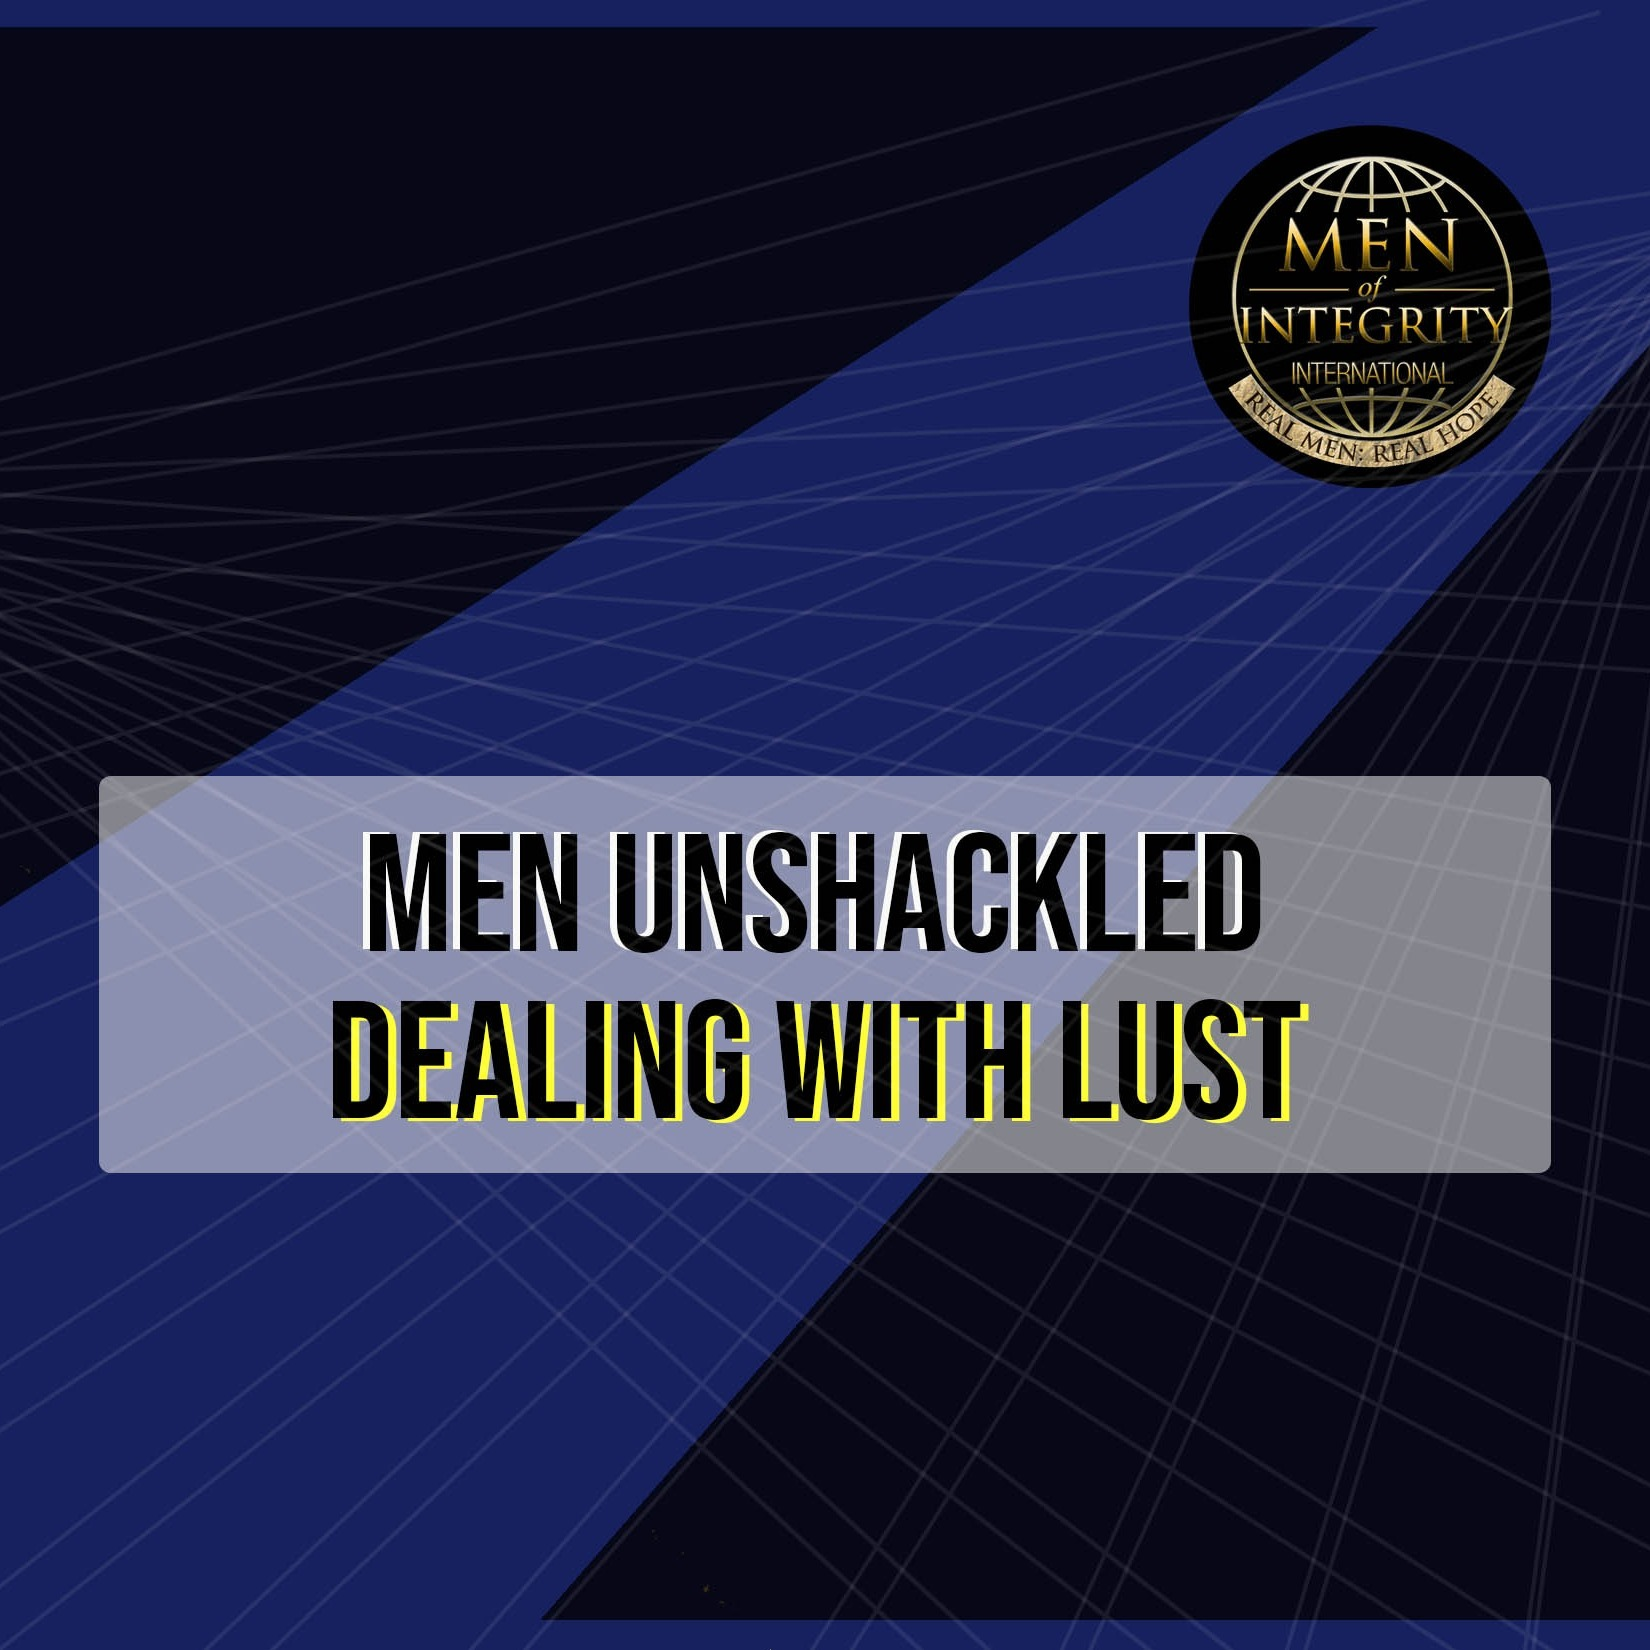 Men Unshackled: Dealing with Lust